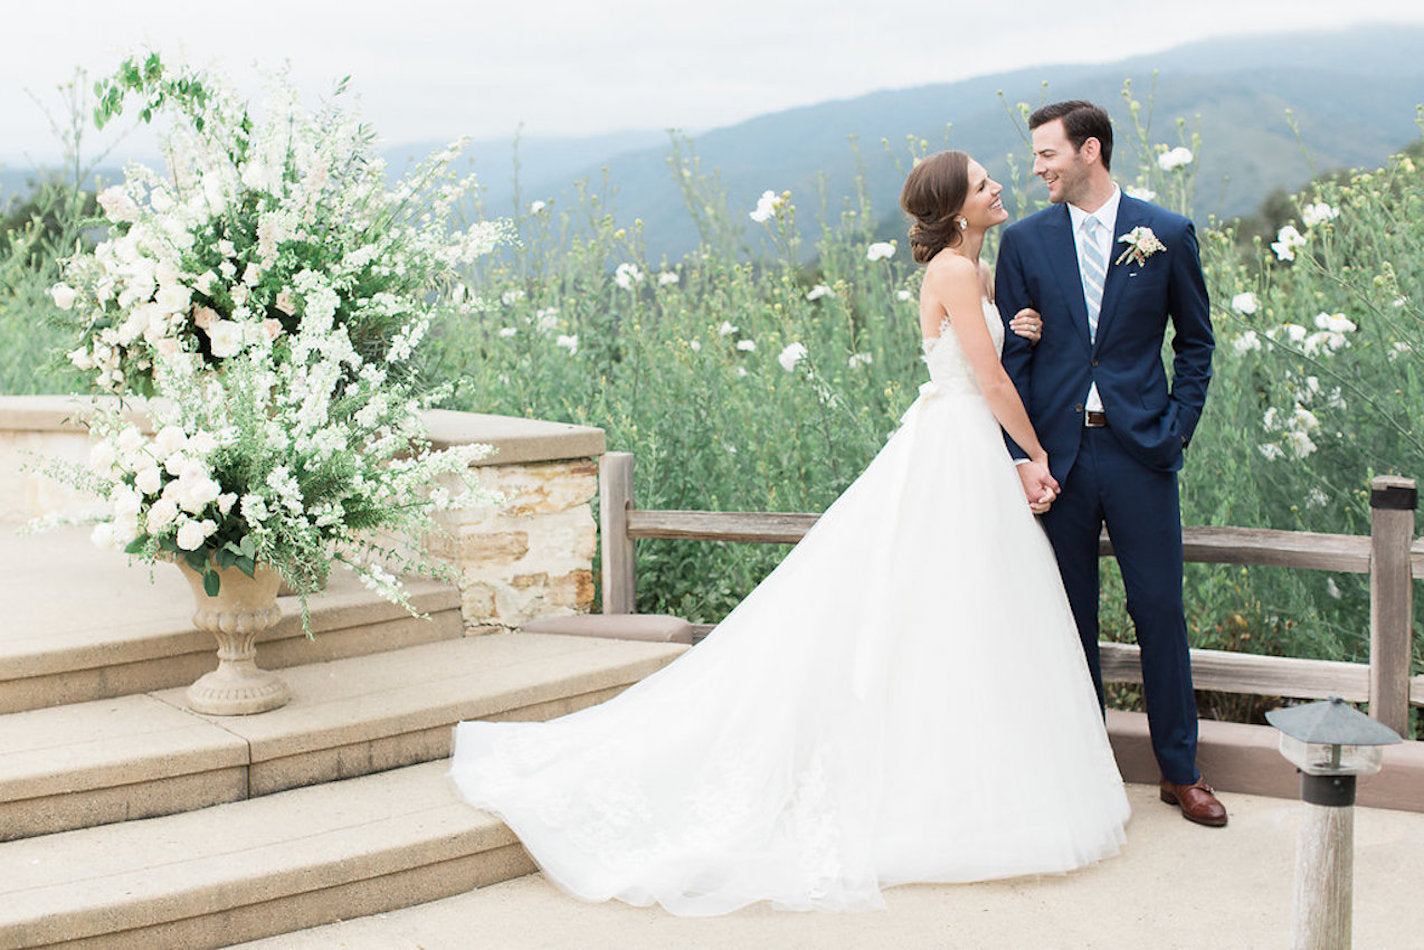 Top 5 Wedding Blogs for 2019